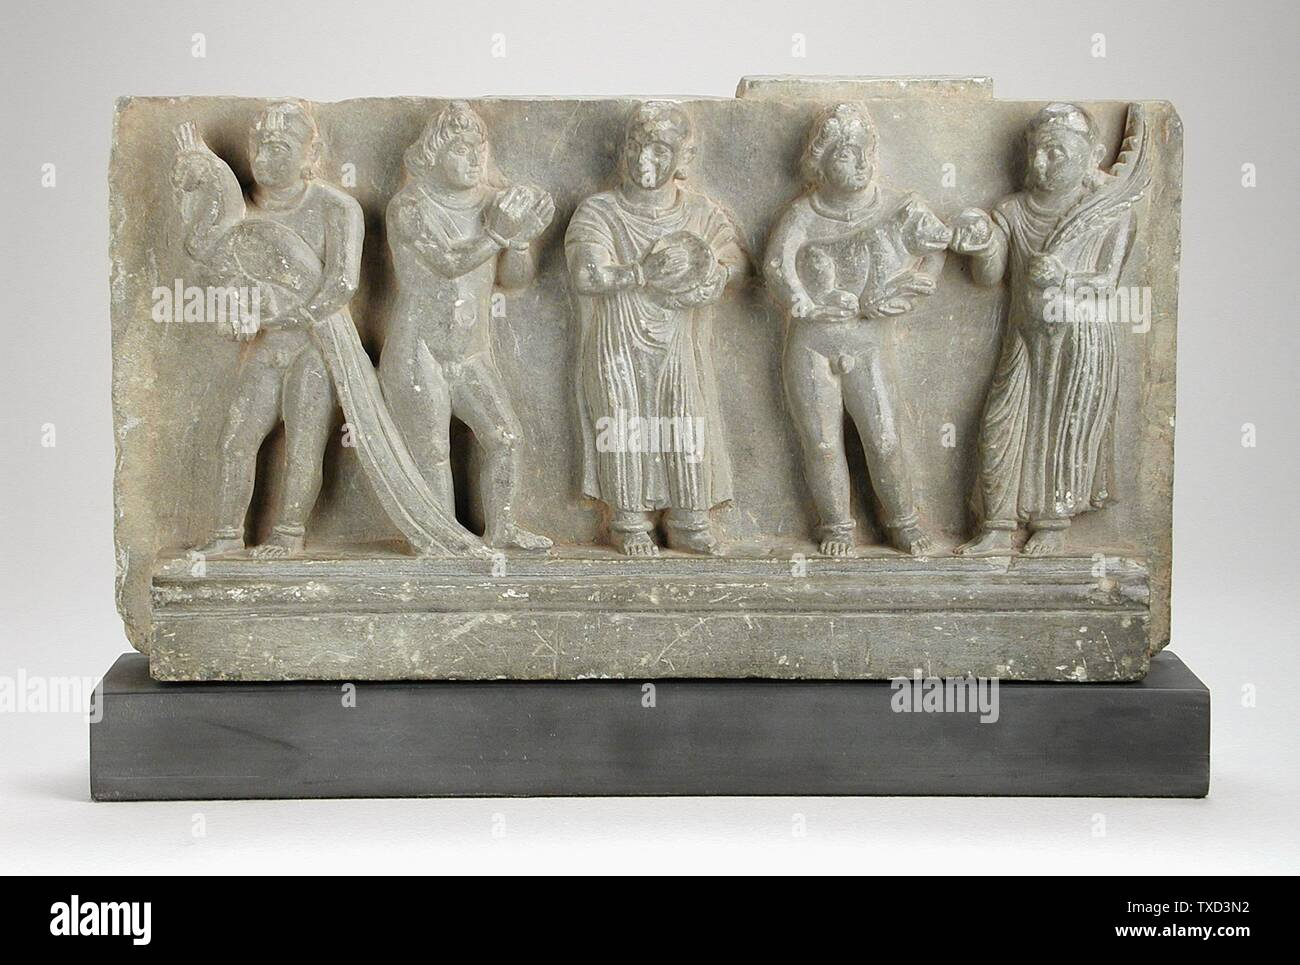 'Stair-Riser Relief with Offering Scene; English:  Pakistan, Gandhara region, 2nd-3rd century Sculpture Gray schist 12 3/8 x 6 3/8 x 2 1/4 in. (31.43 x 16.19 x 5.71 cm) Gift of Mr. and Mrs. Werner G. Scharff (M.91.232.4) South and Southeast Asian Art; 2nd-3rd century; ' - Stock Image